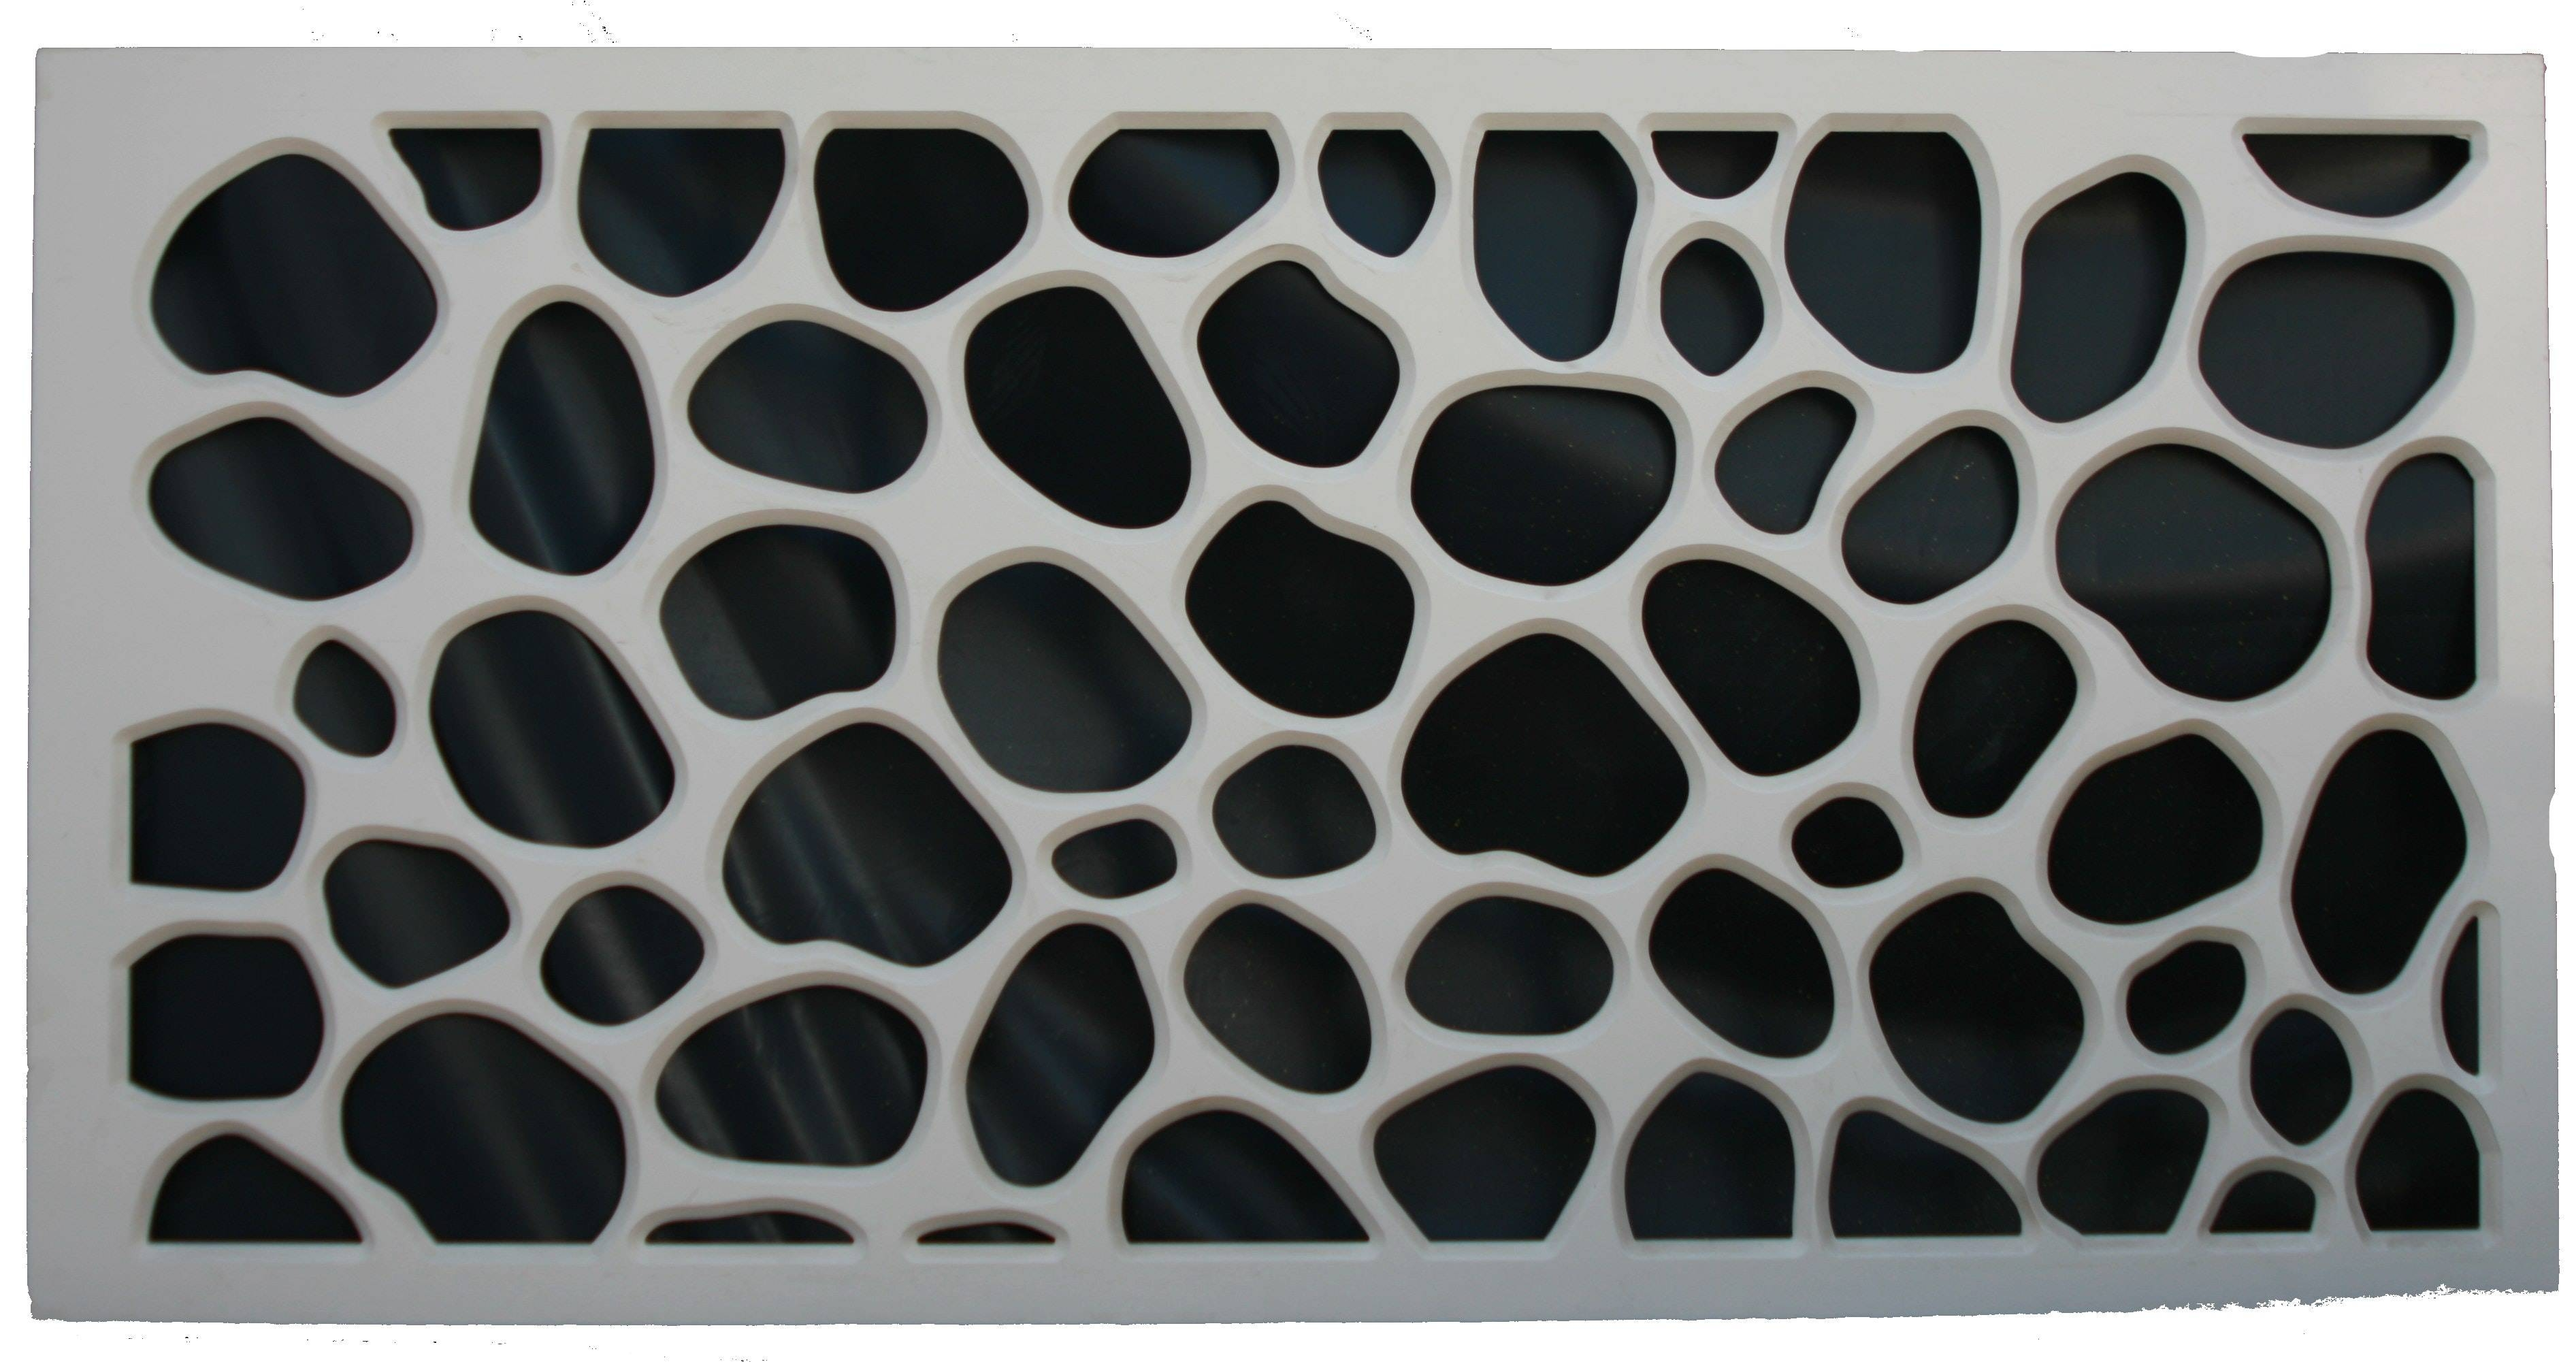 Metal Wall Art For Outdoors Black Outdoor On Modern Home Pertaining To Latest Large Garden Wall Art (View 16 of 25)